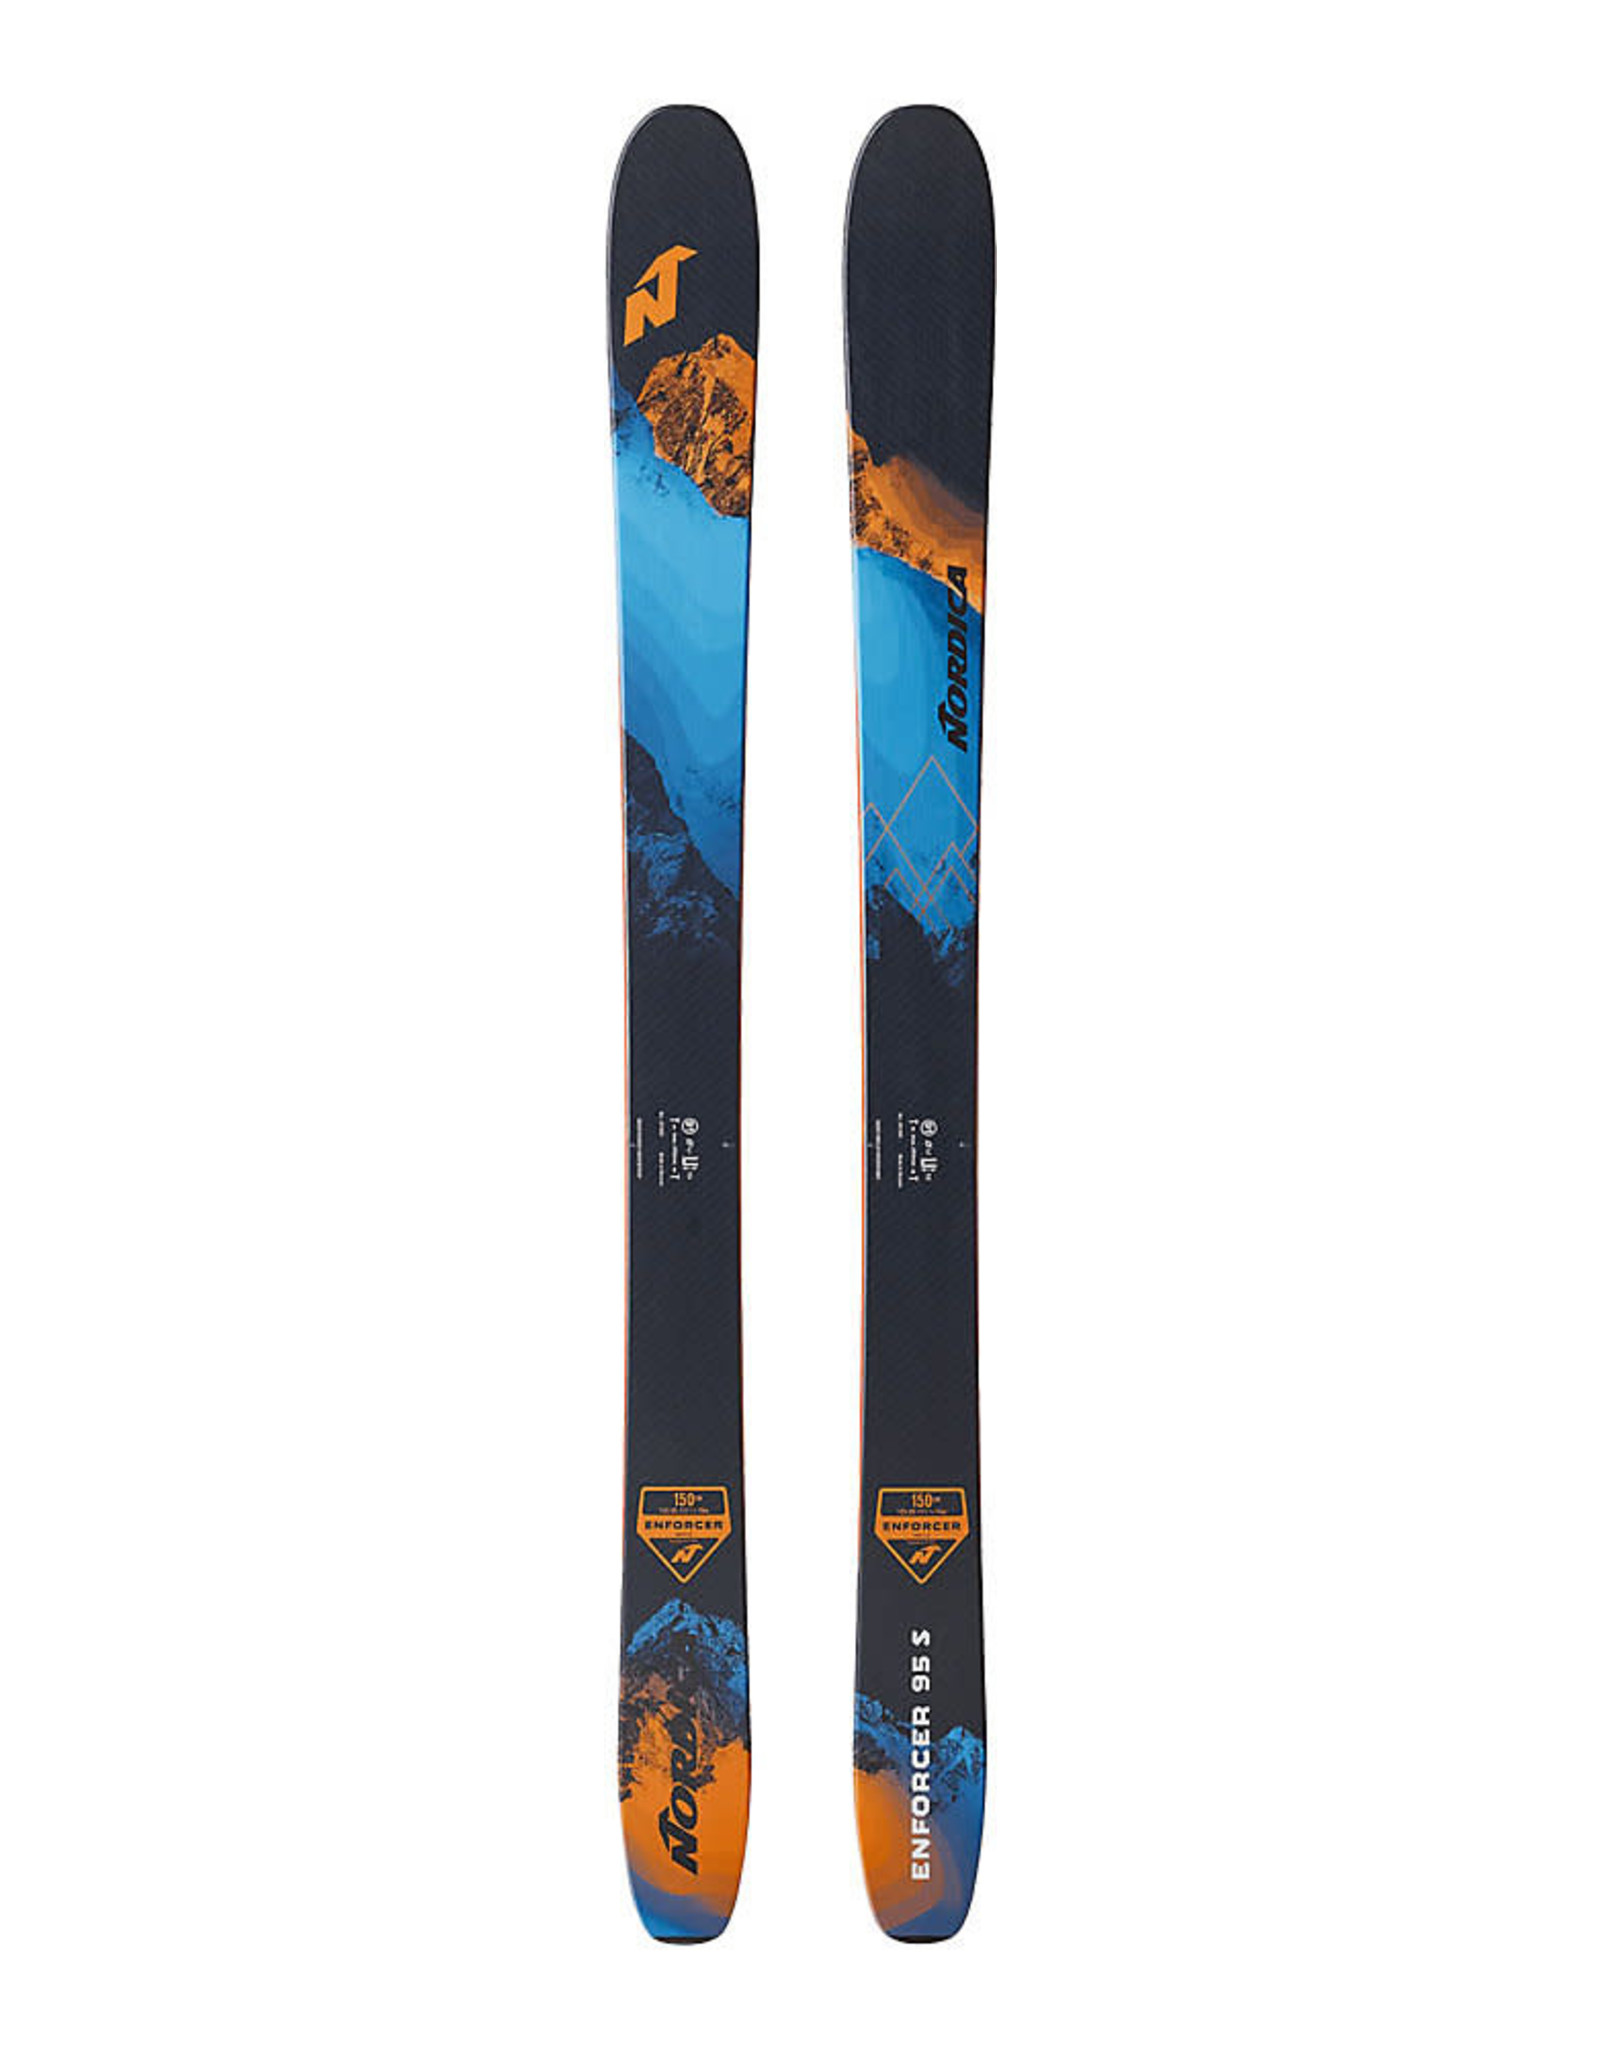 NORDICA NORDICA ENFORCER 95 S JR.